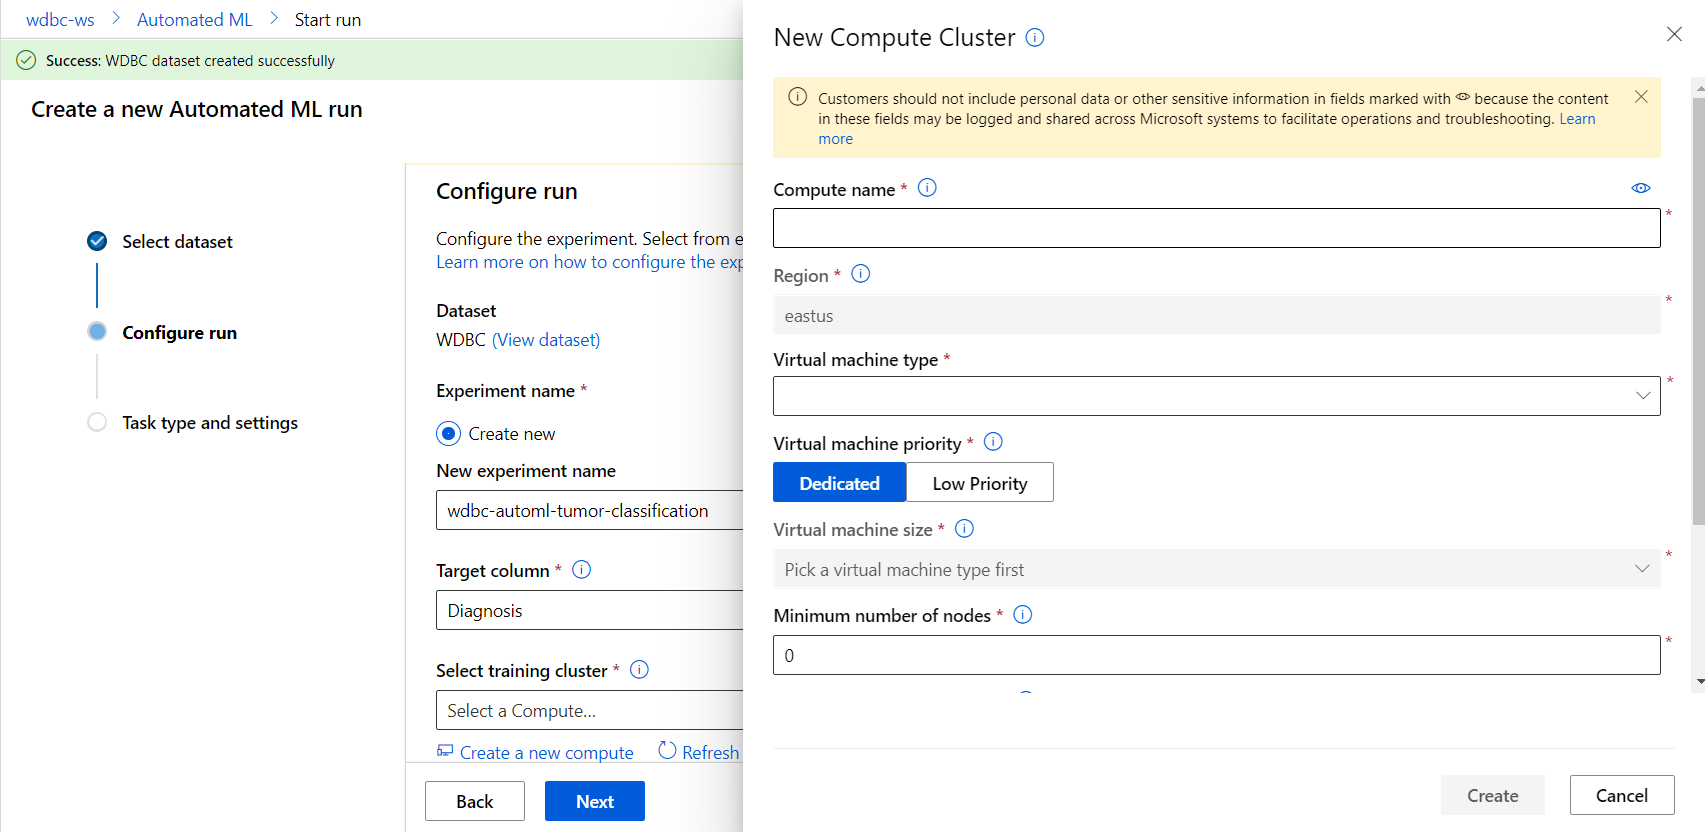 Azure Automated Machine Learning-New Compute Cluster